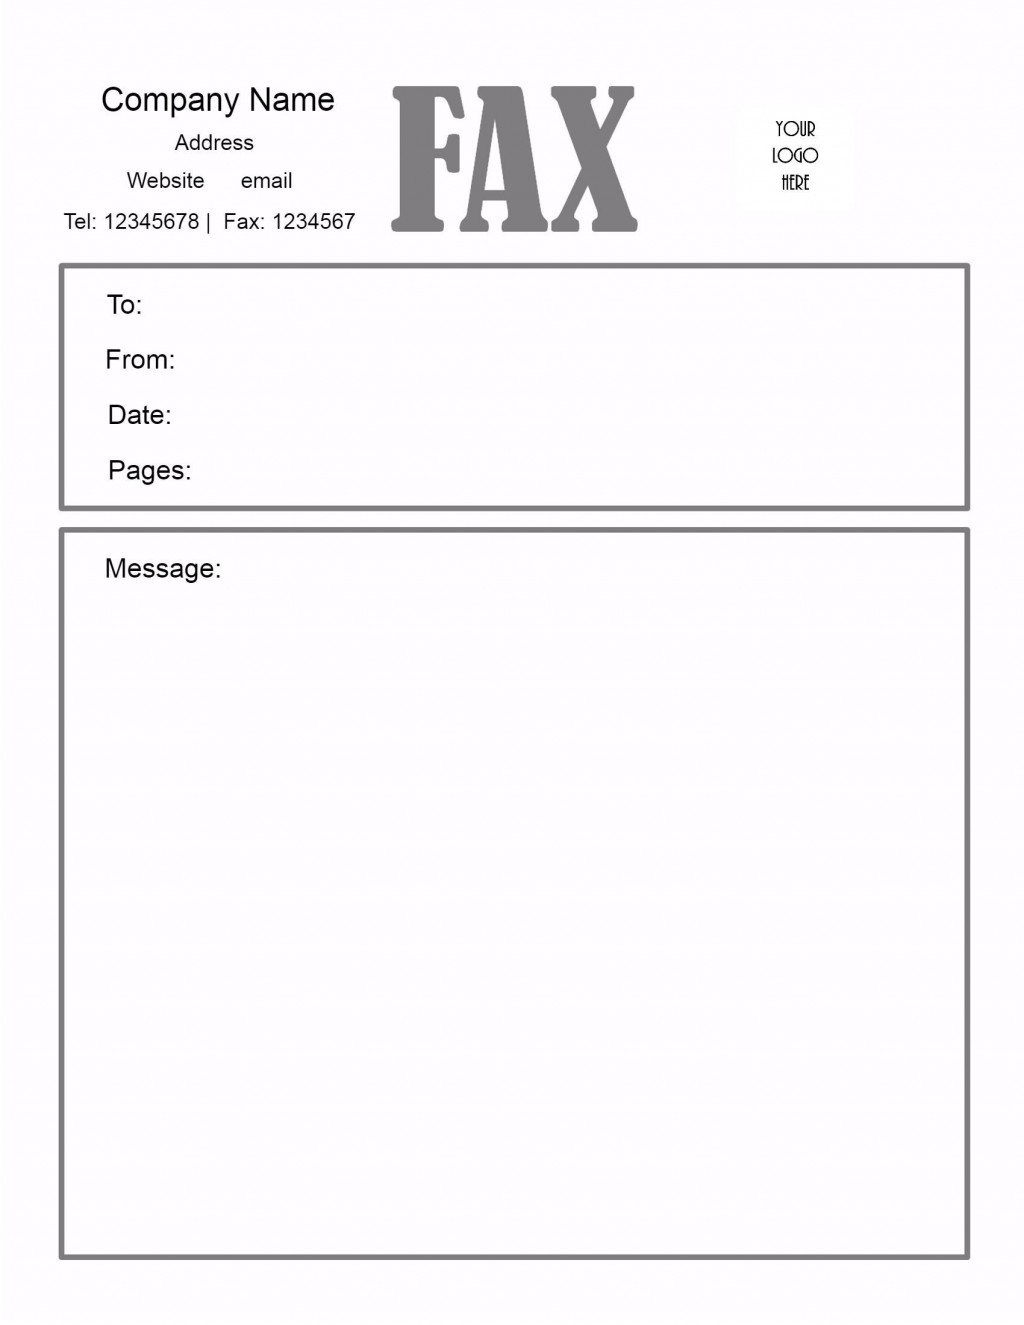 005 Awesome General Fax Cover Letter Template Inspiration  Sheet Word Confidential ExampleLarge